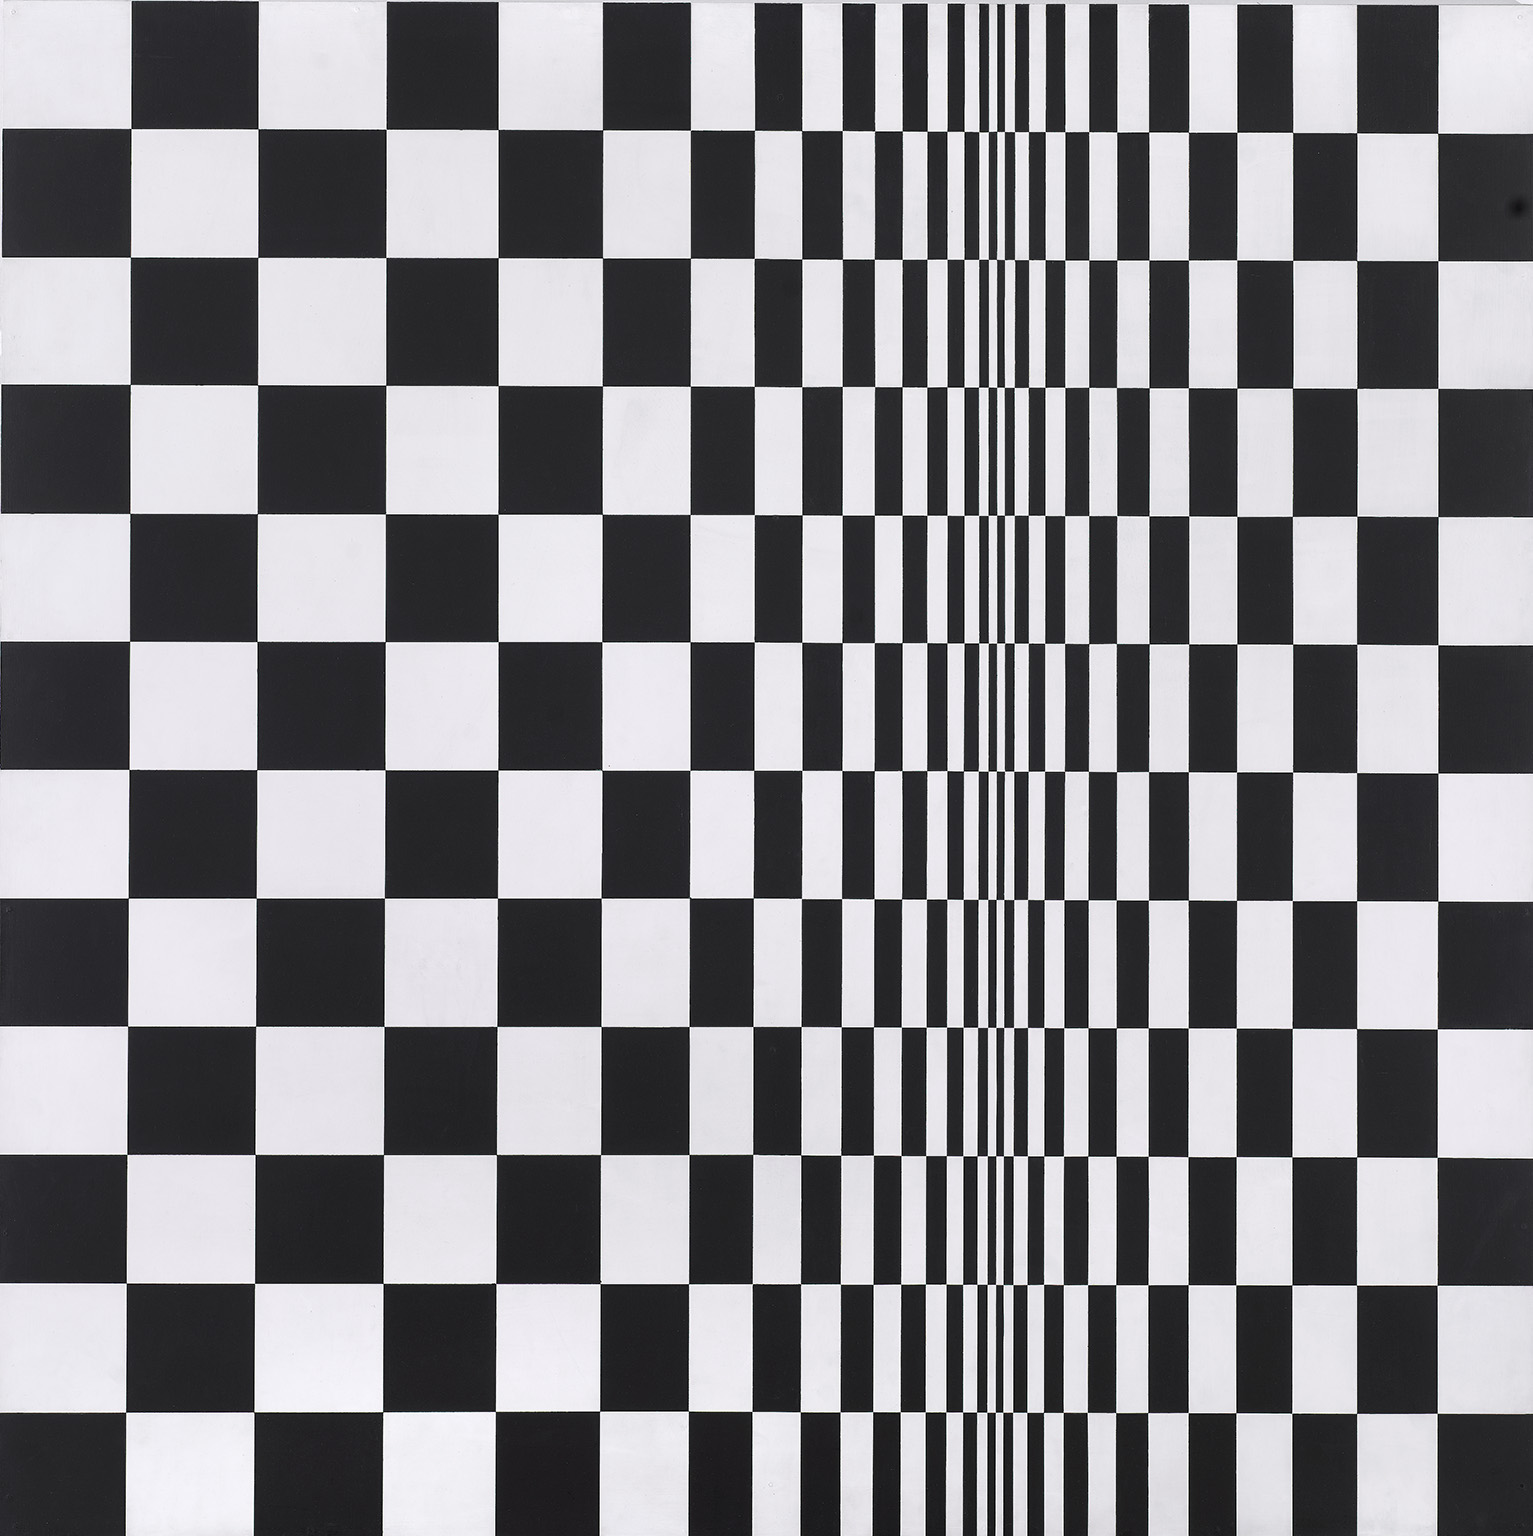 Bridget Riley, (1931-), Movement in Squares, 1961, Tempera on Hardboard. Photo © Arts Council Collection, © Bridget Riley, 2020. All rights reserved.